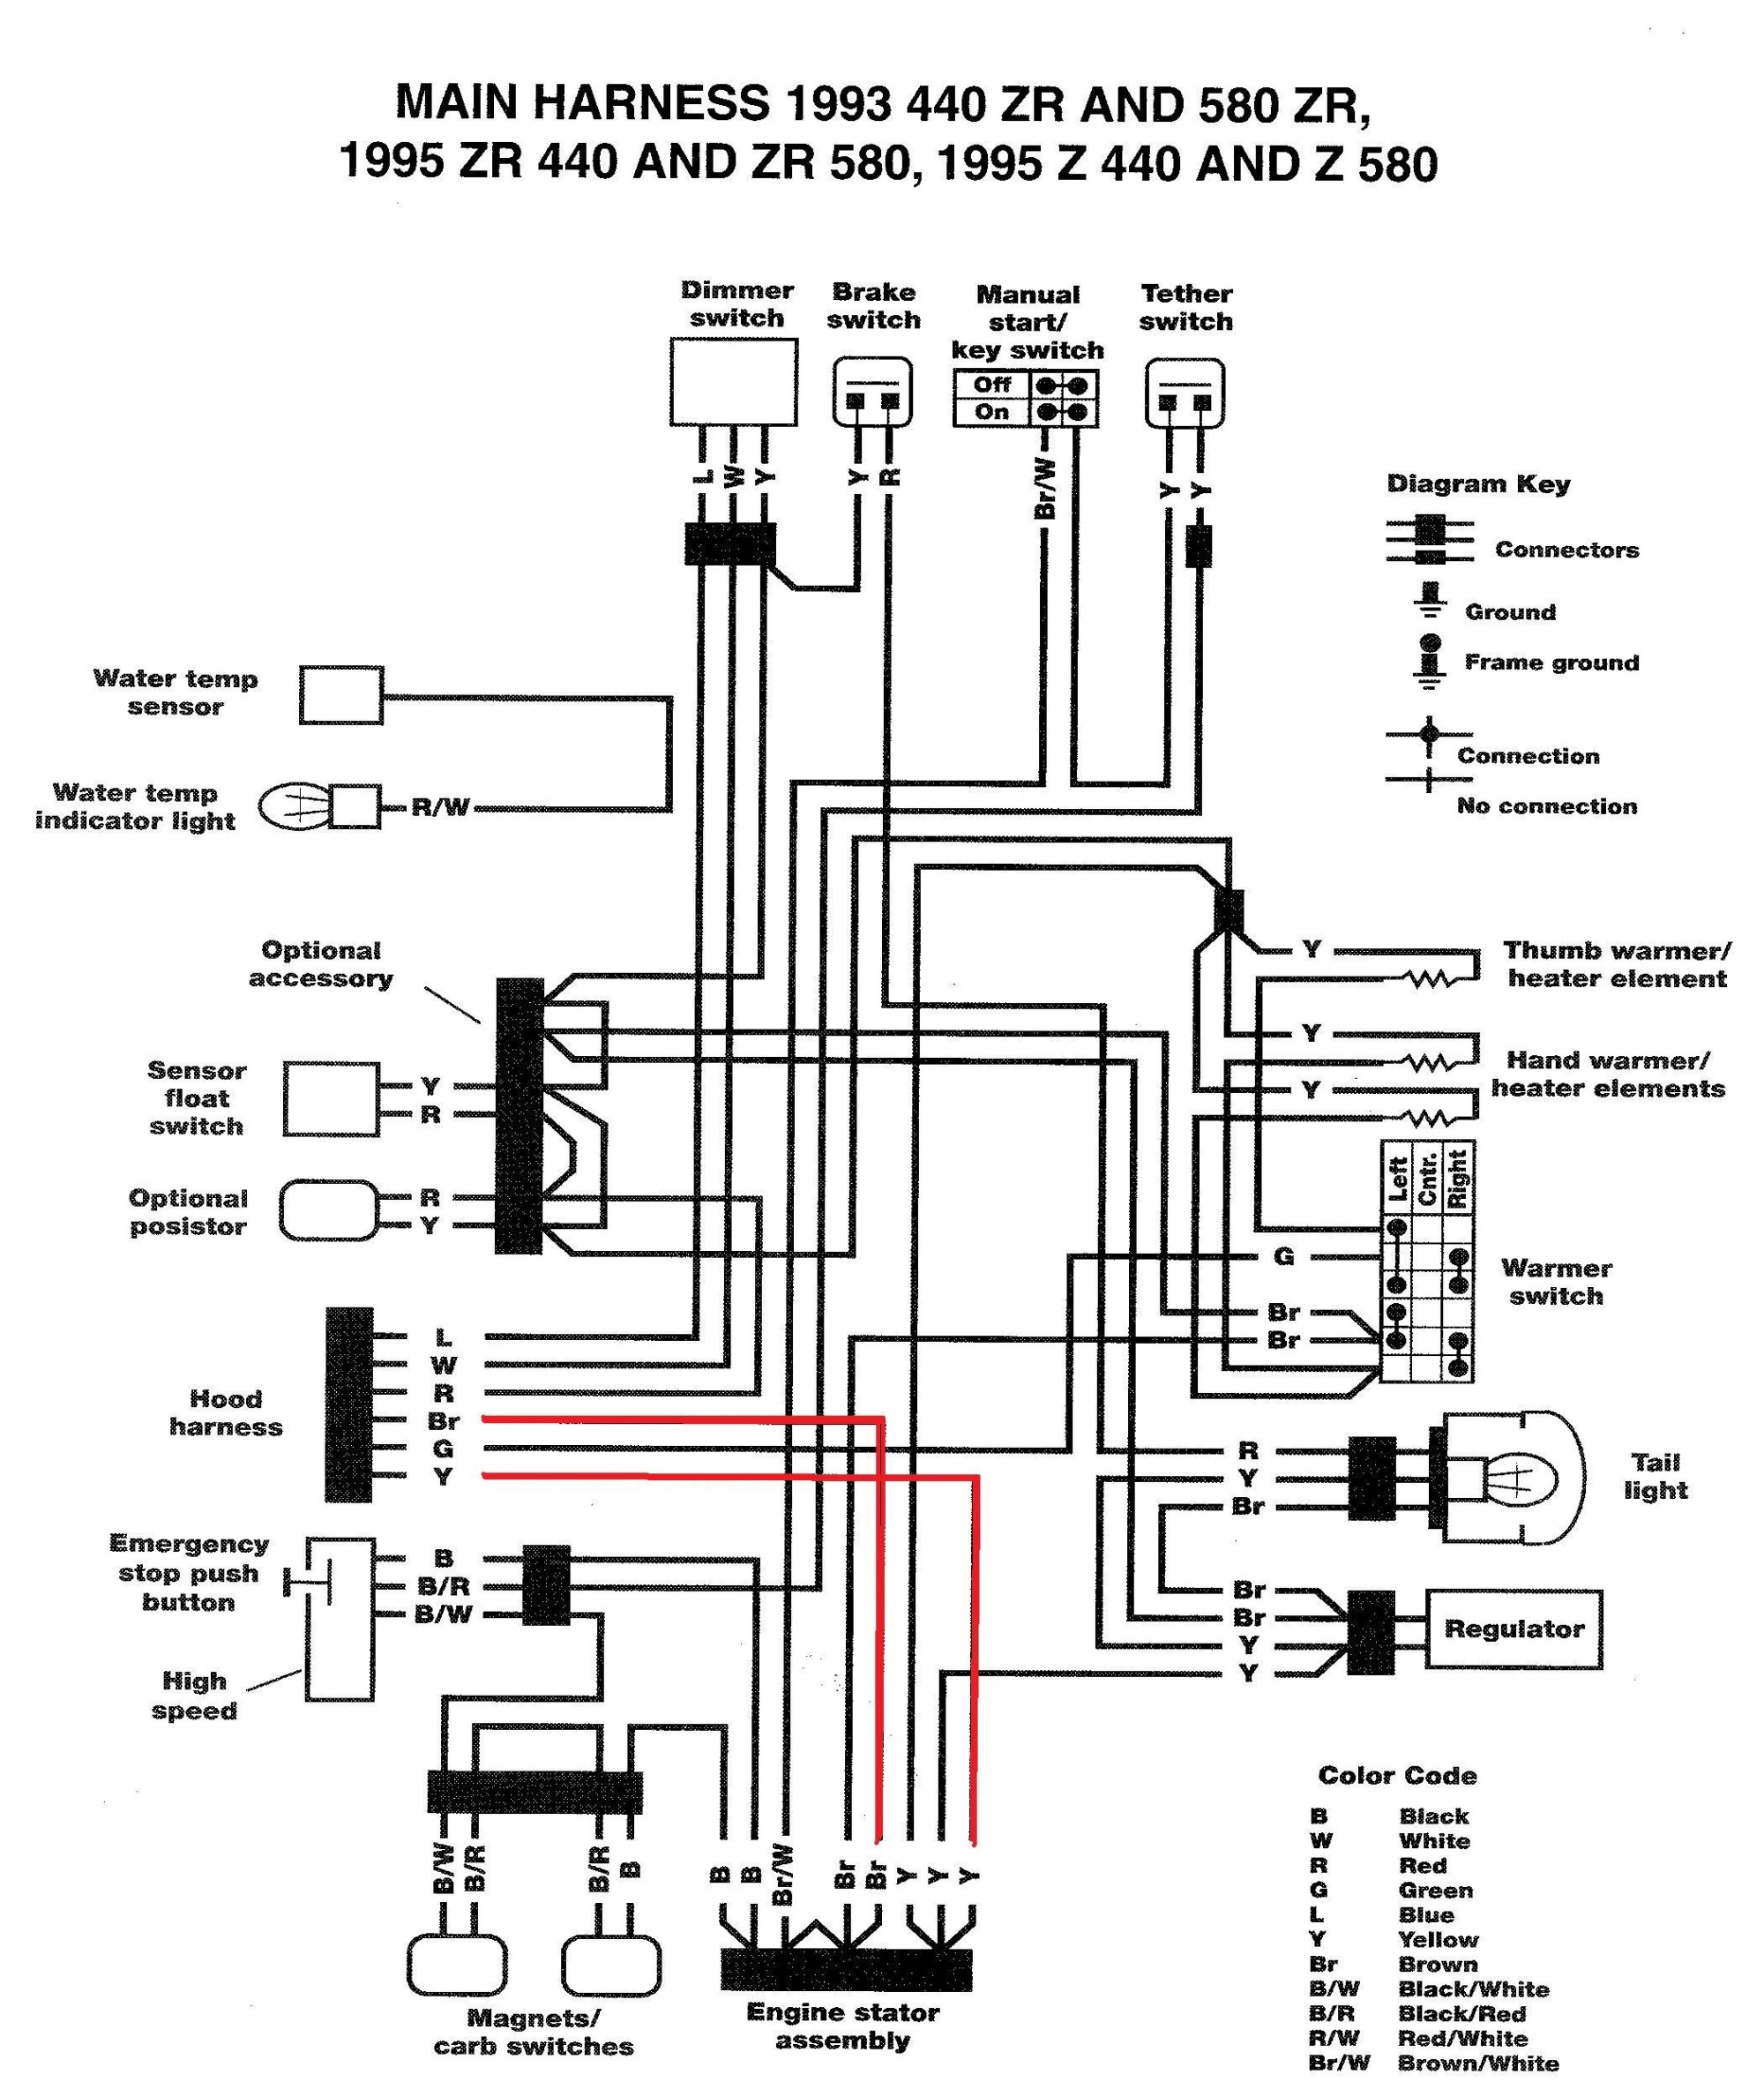 hight resolution of xt 600 yamaha ignition switch wiring diagram wiring diagram database wiring diagram image by download the following yamaha xt600e wiring